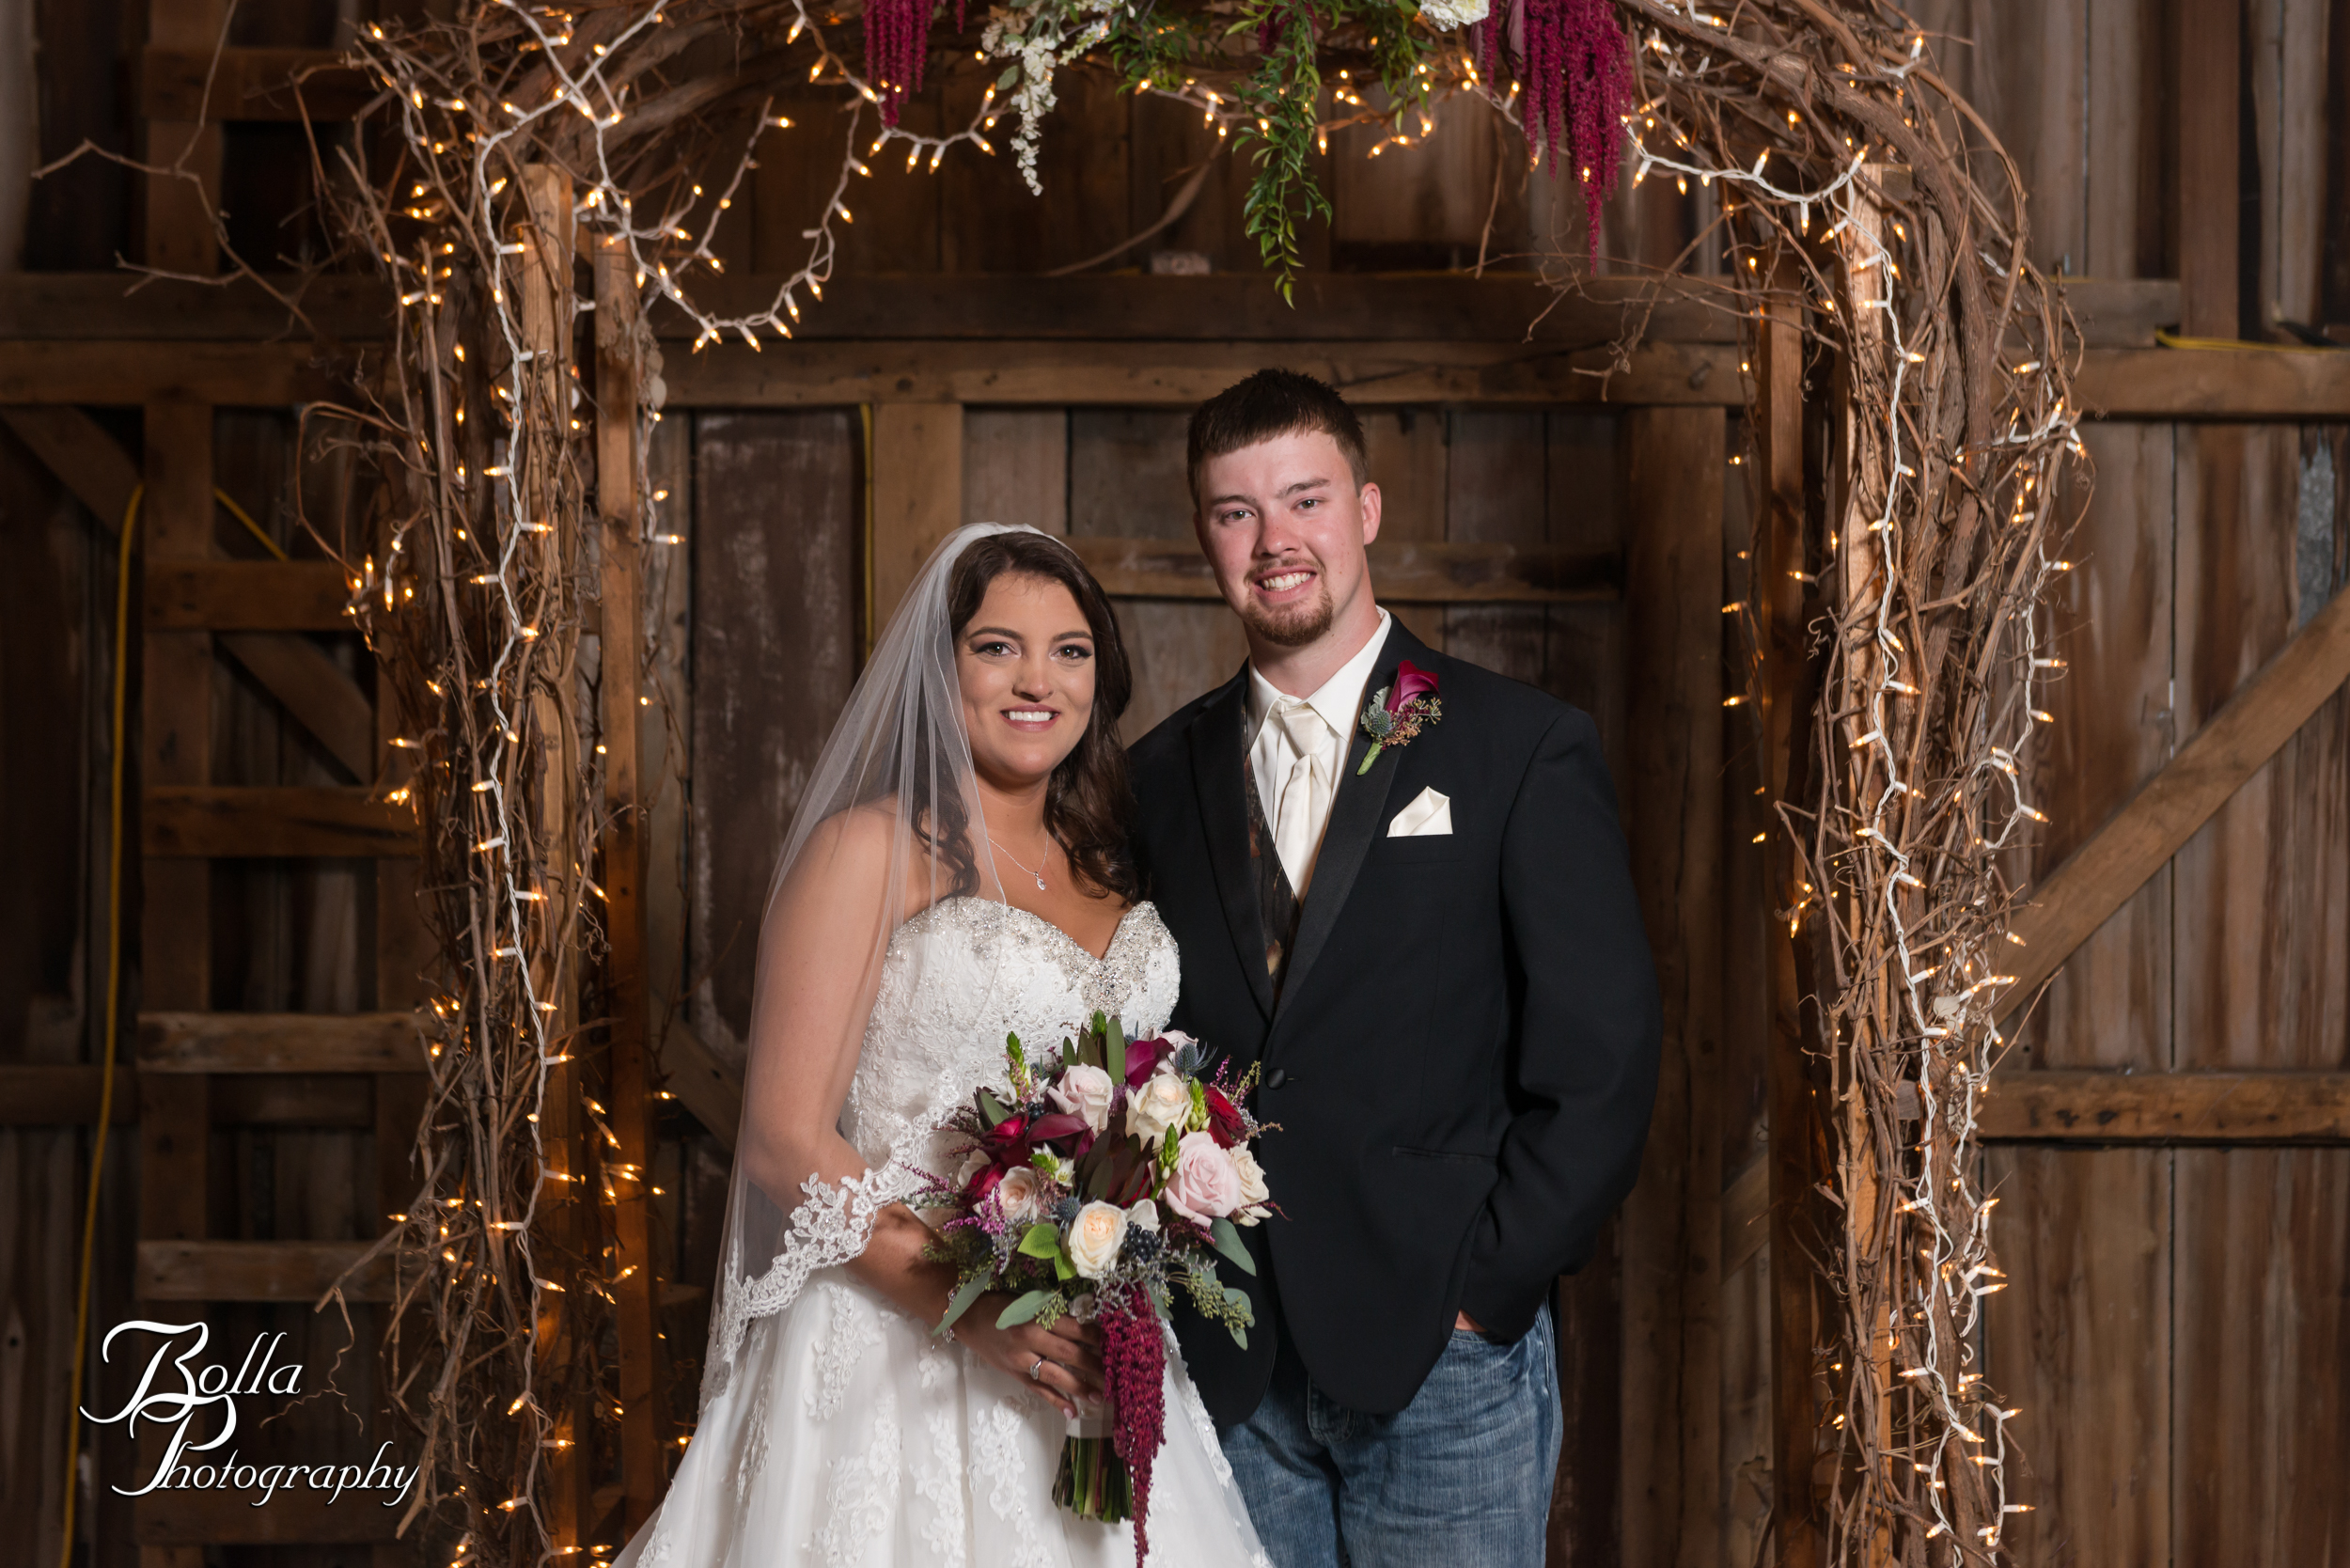 Bolla_photography_edwardsville_wedding_photographer_st_louis_weddings_Amber_Korsmeyer_Kyle_Gruner_Schwarz_Barn_blue_jeans_pickup_truck_autumn-0202.jpg